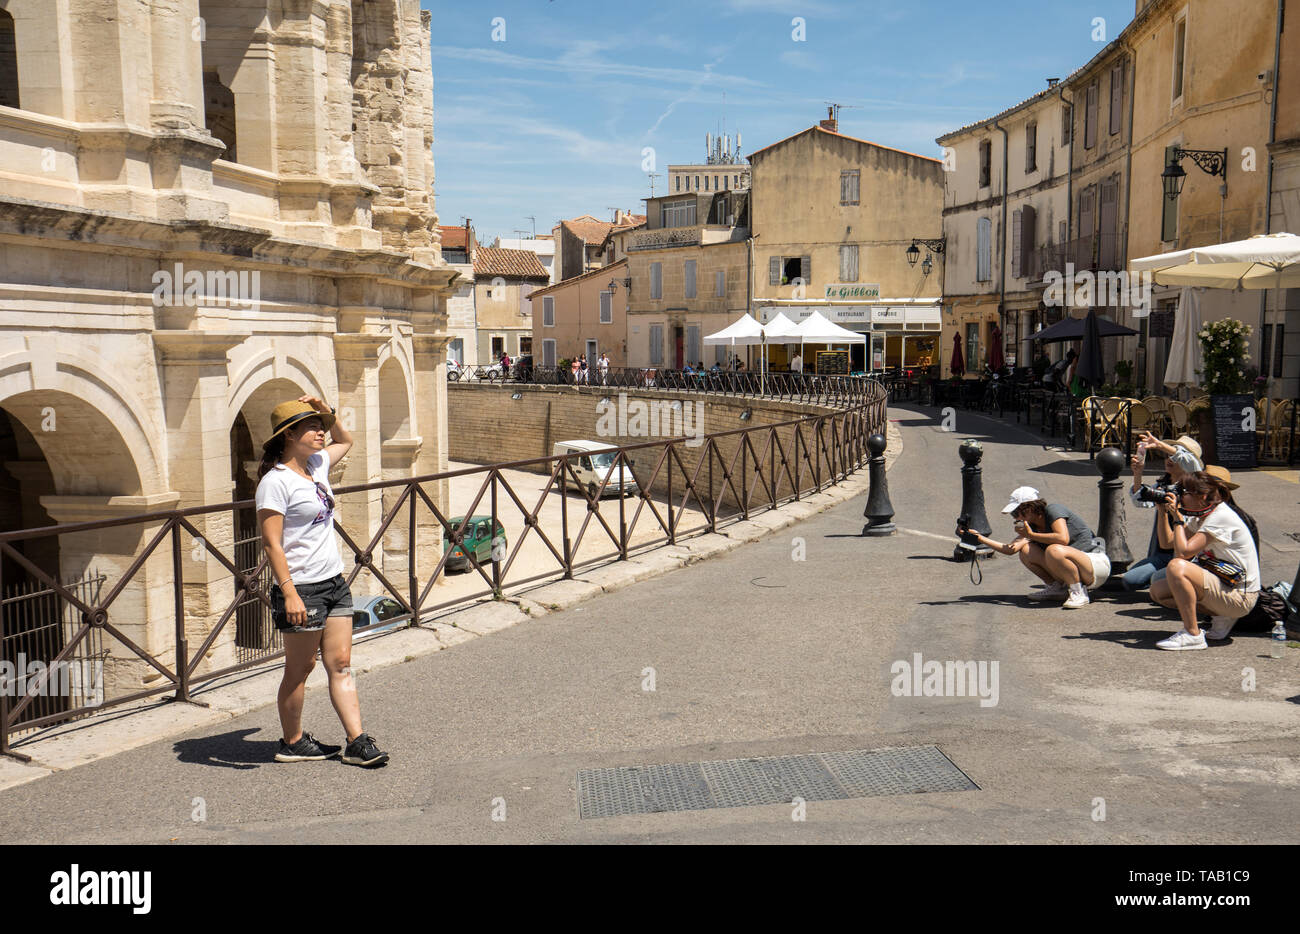 Arles, France - June 27, 2017: Photo session of tourists from Asia in front of the ruins of the Roman Arena in Arles - Stock Image